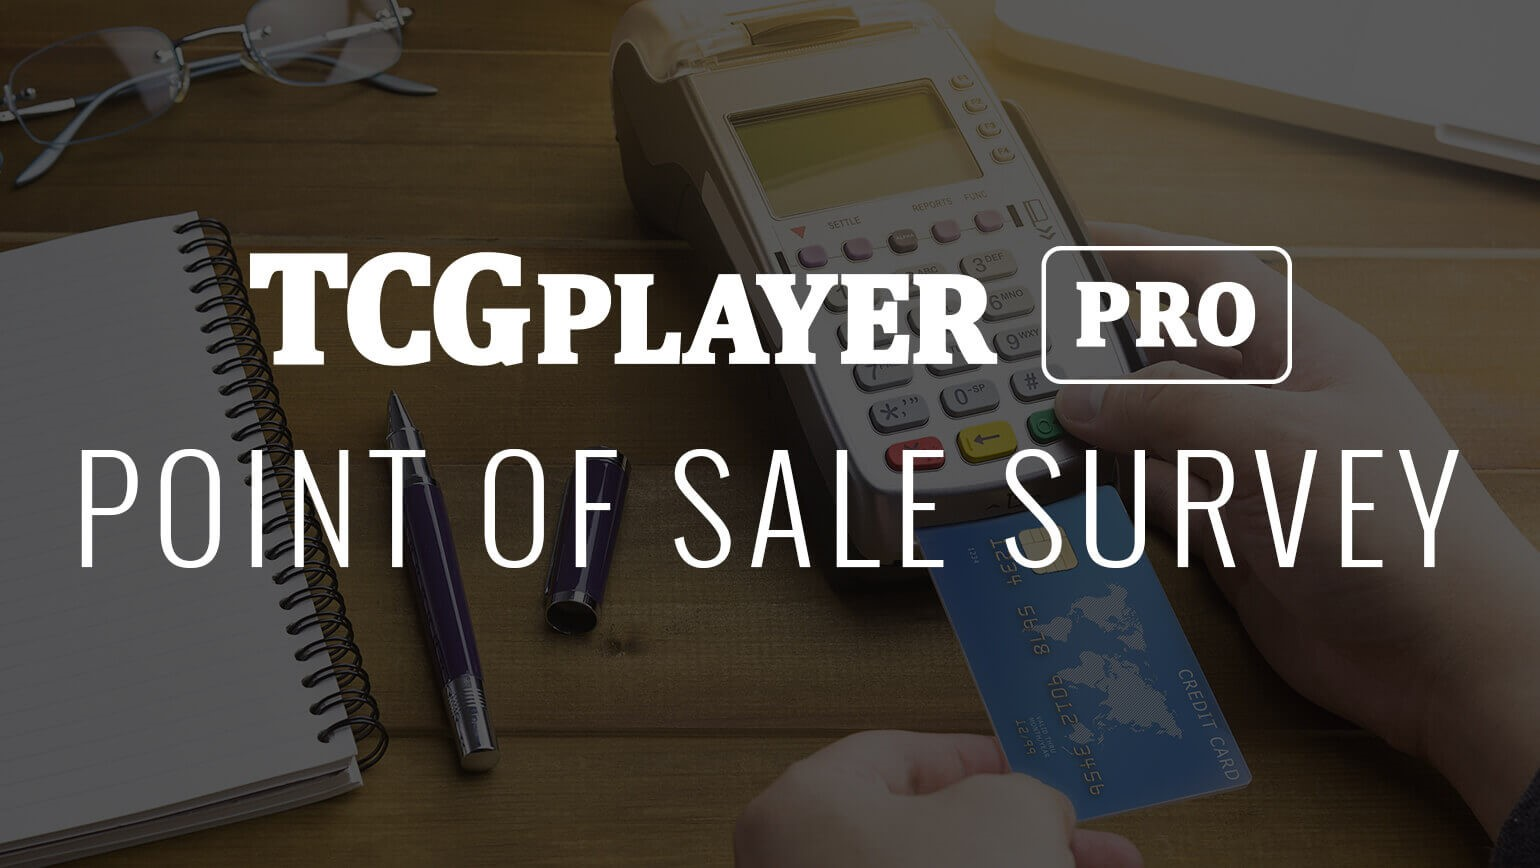 TCGplayer Pro Point of Sale Survey